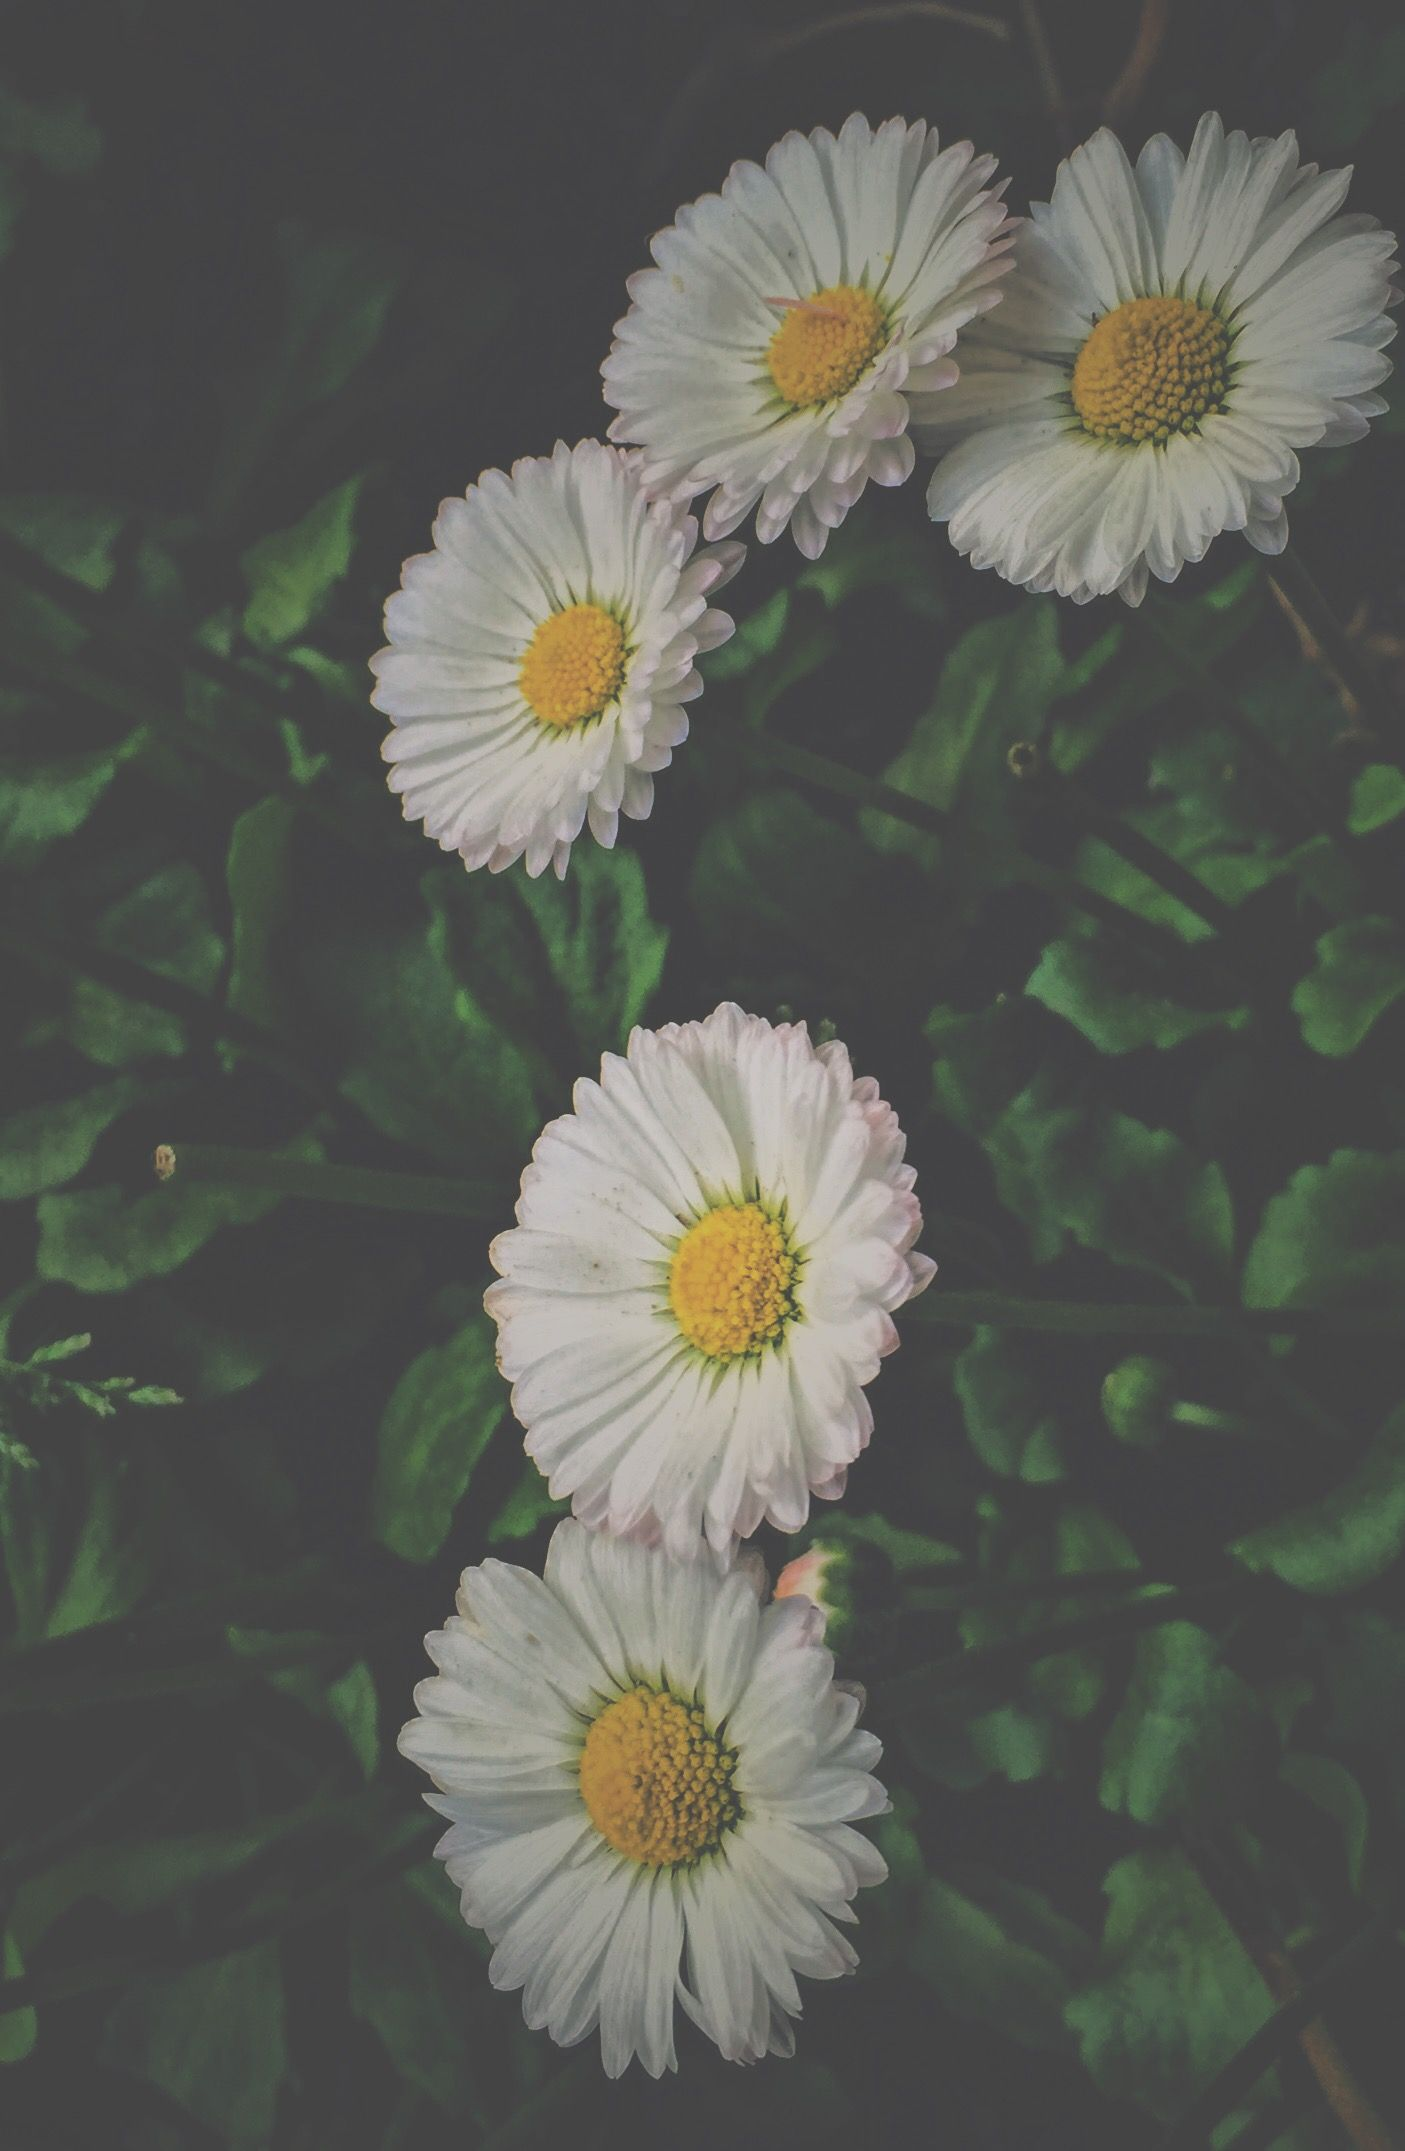 Daisies Tumblr Aesthetic Daisies Background Wallpaper